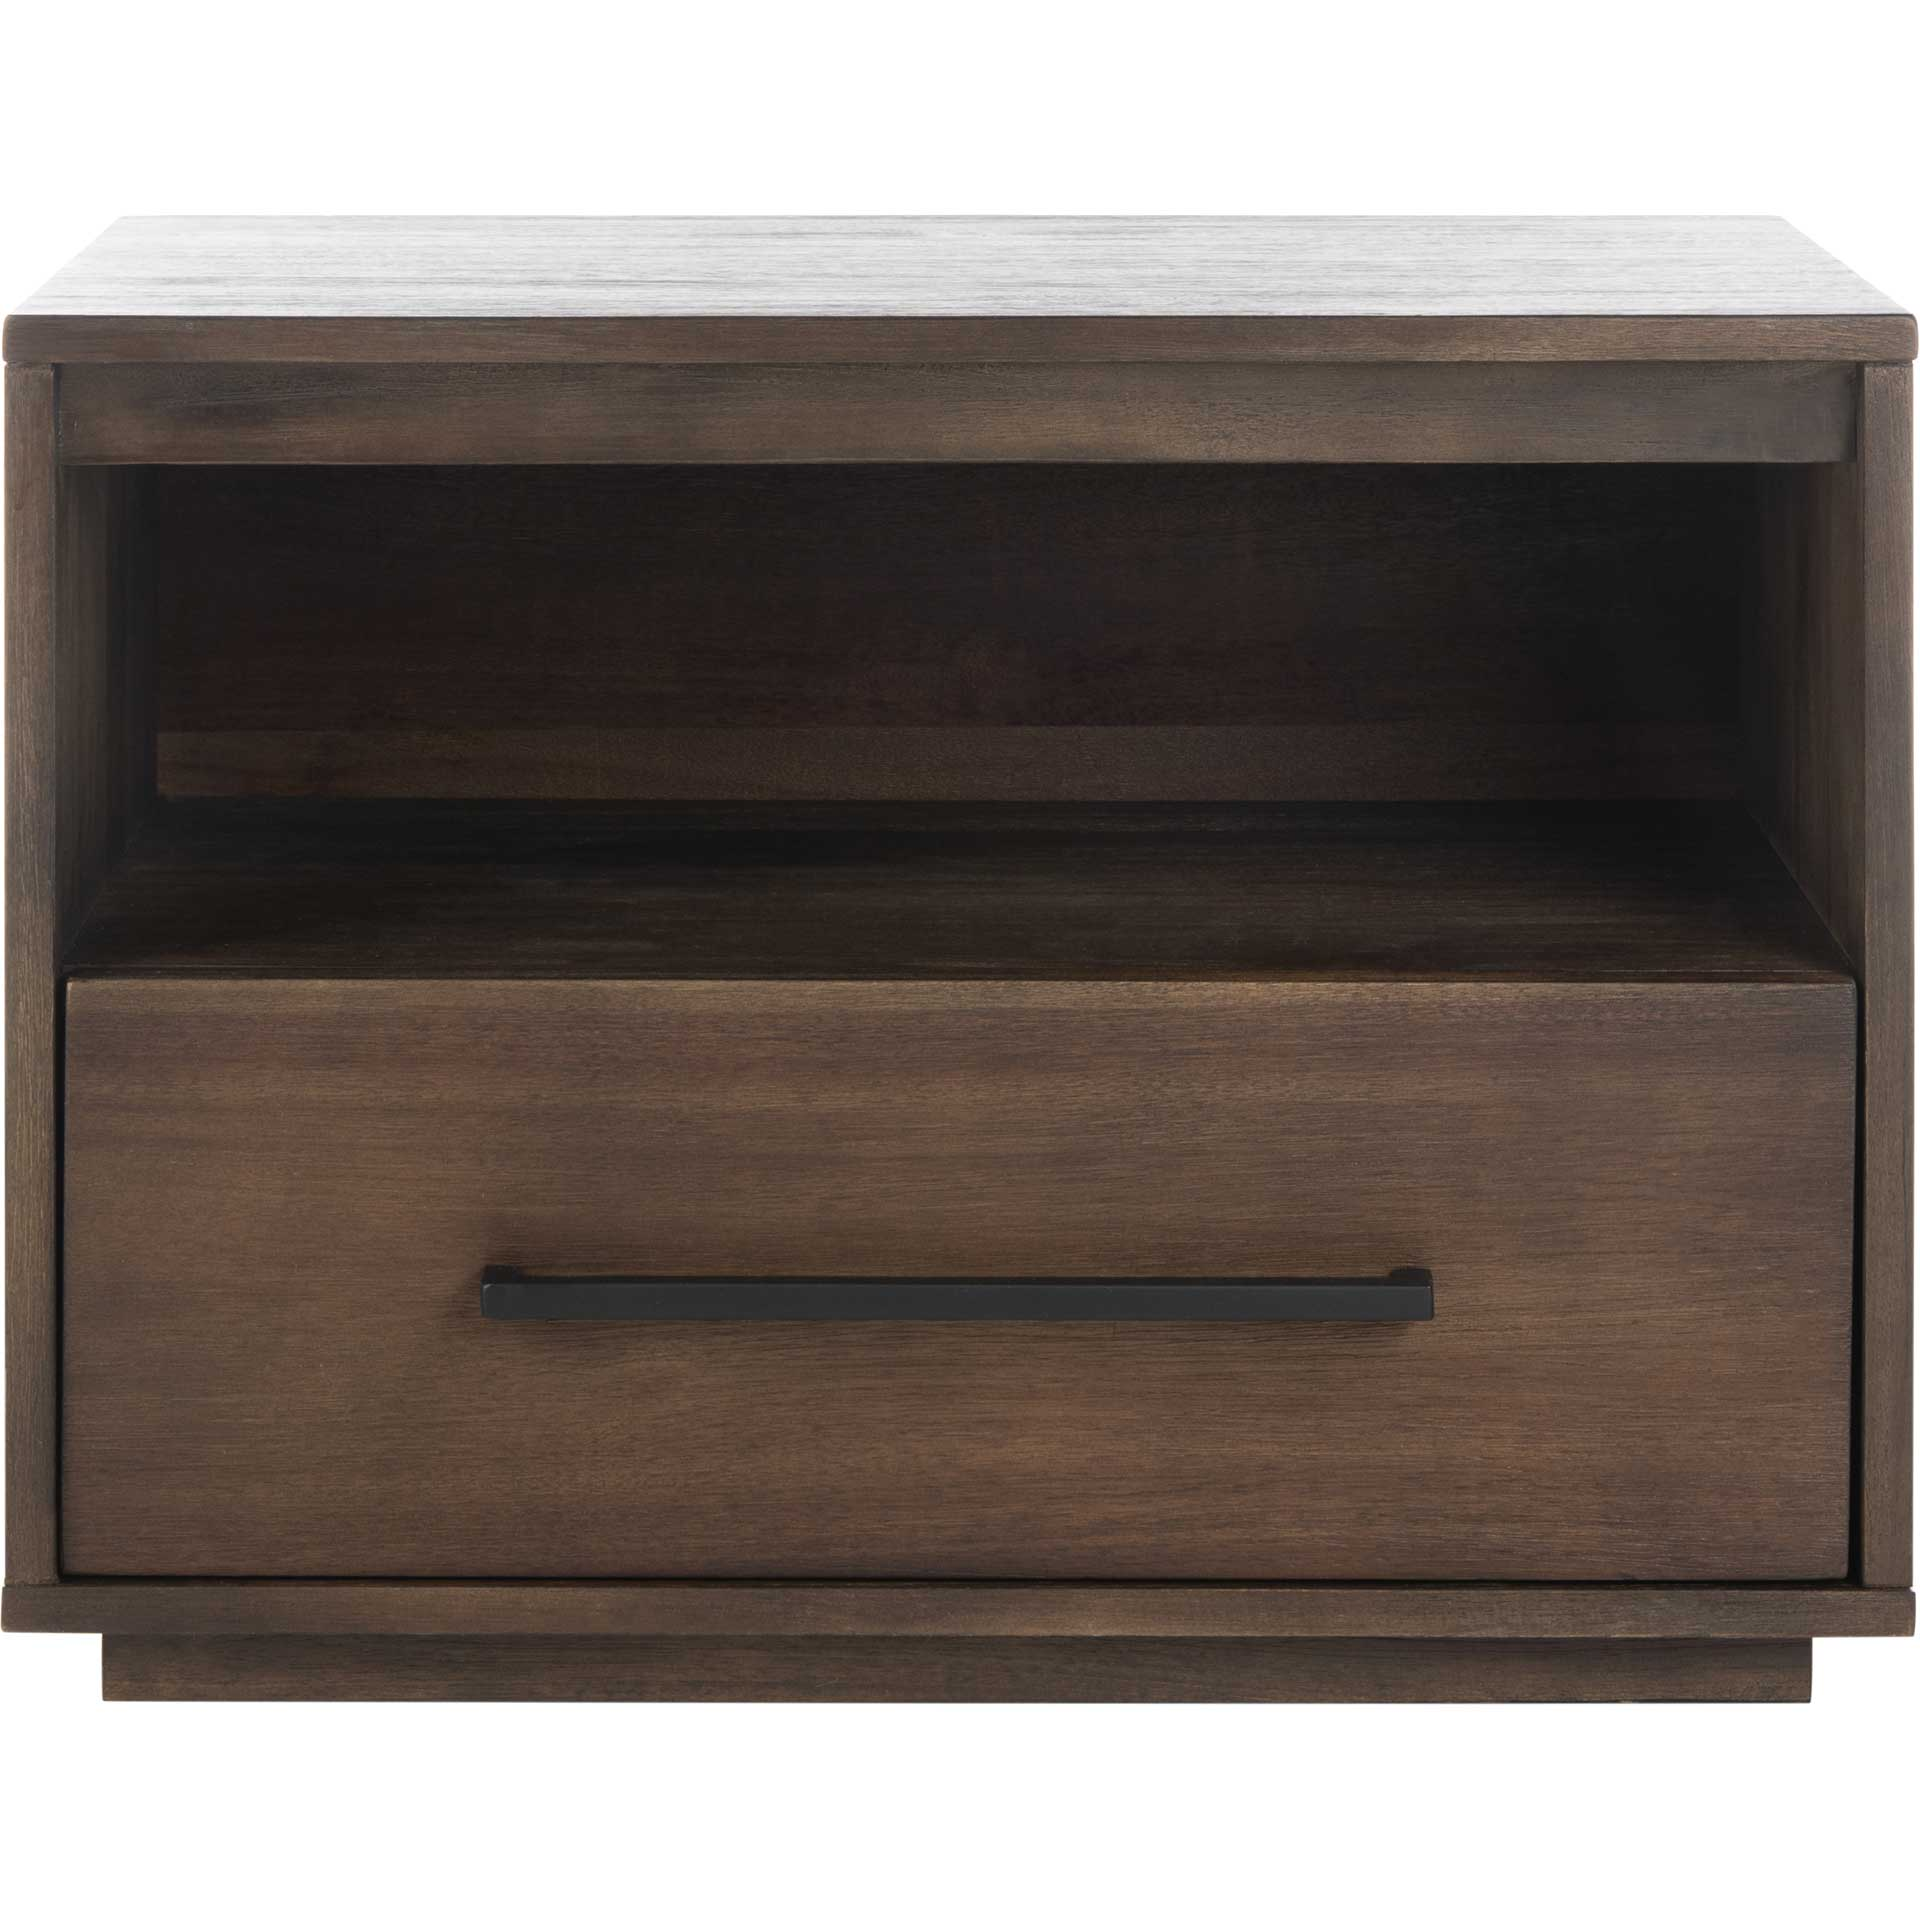 Magna 1 Drawer Nightstand Dark Chocolate